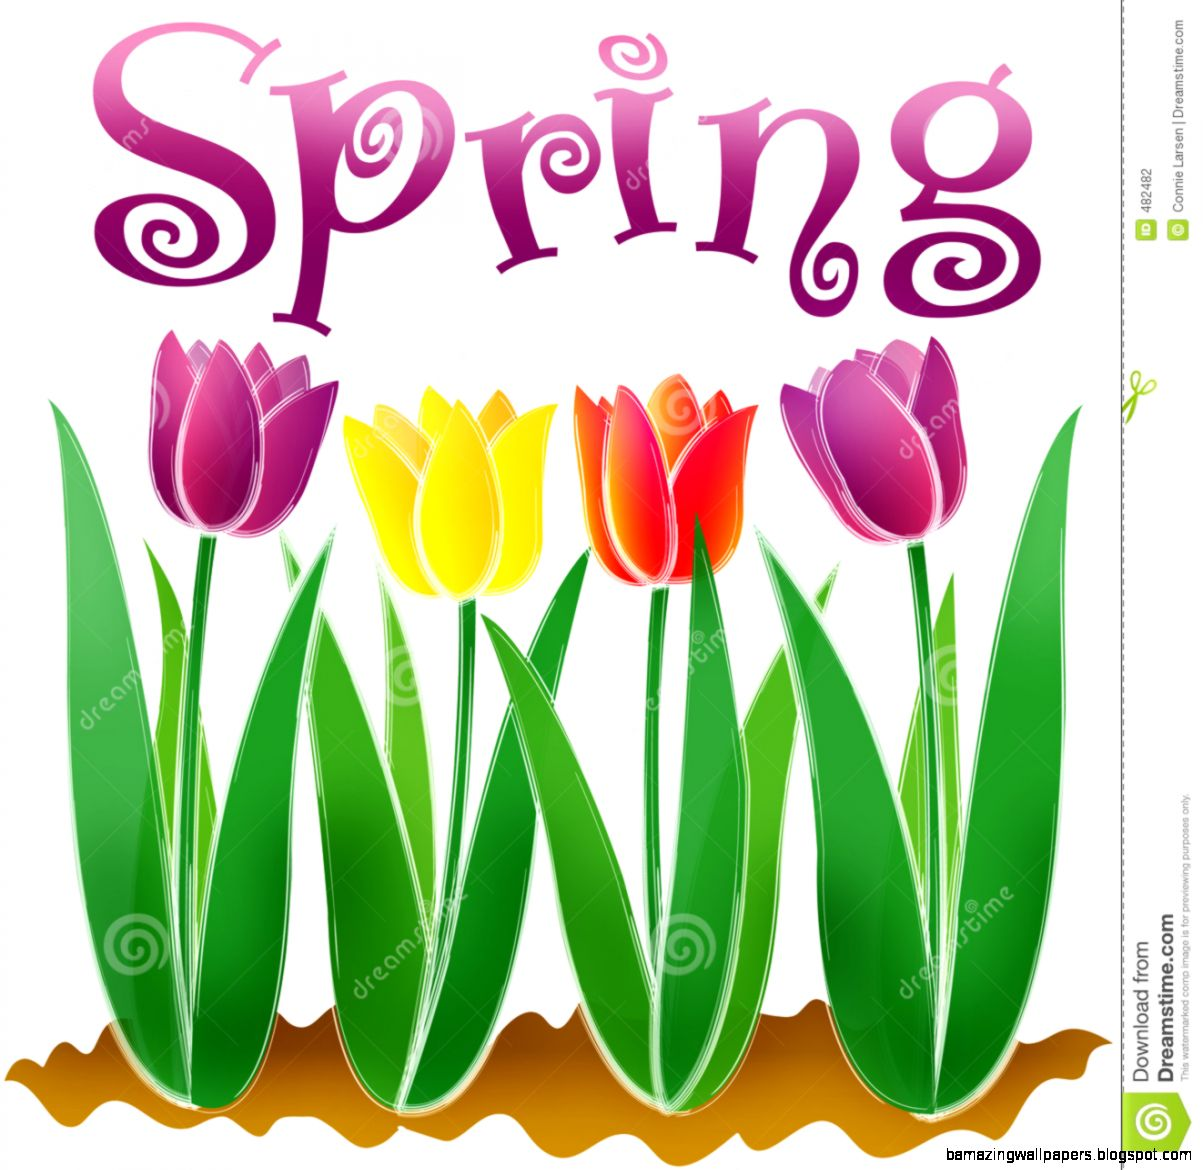 think spring clip art amazing wallpapers rh bamazingwallpapers blogspot com  free spring clipart for teachers